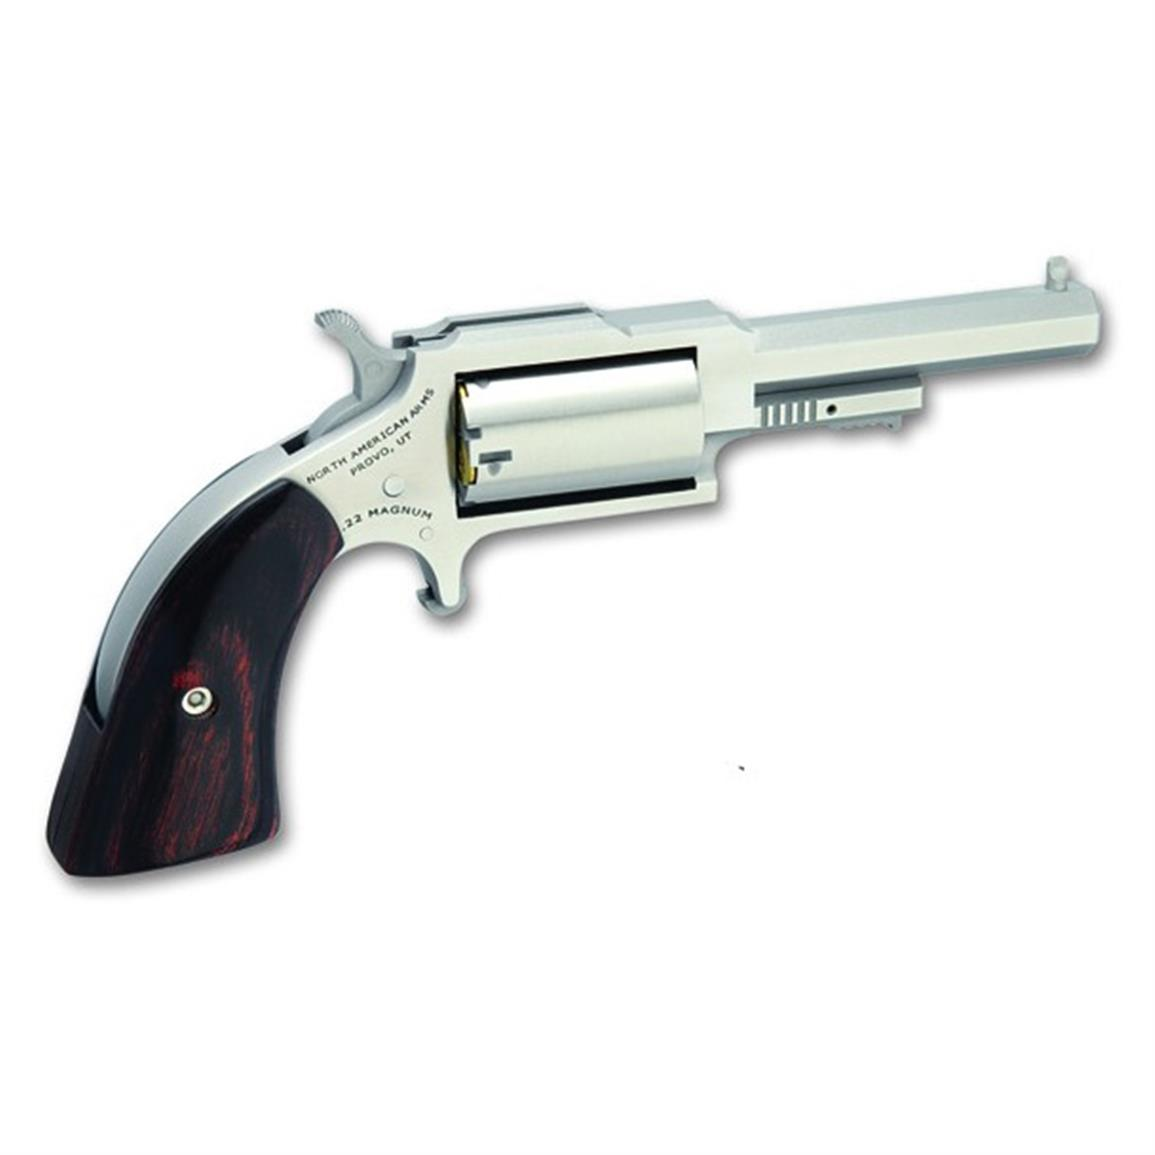 NAA 1860 Sheriff with .22LR Conversion Cylinder, Revolver, .22 Magnum, Rimfire, 1860250C, 744253002397, 2.5 inch barrel